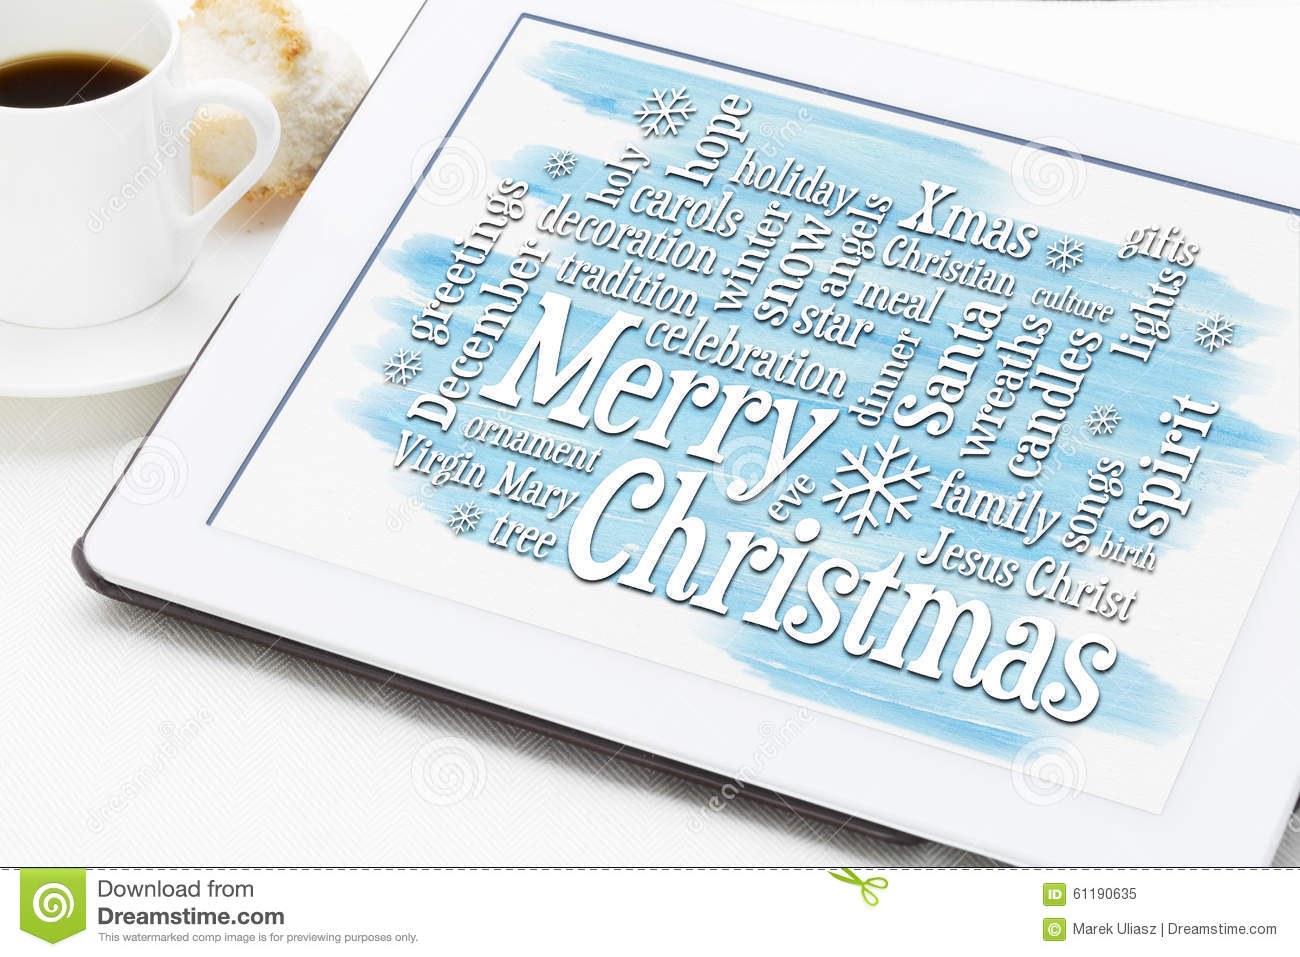 Merry christmas greetings word cloud on tablet stock image image merry christmas greetings word cloud on tablet m4hsunfo